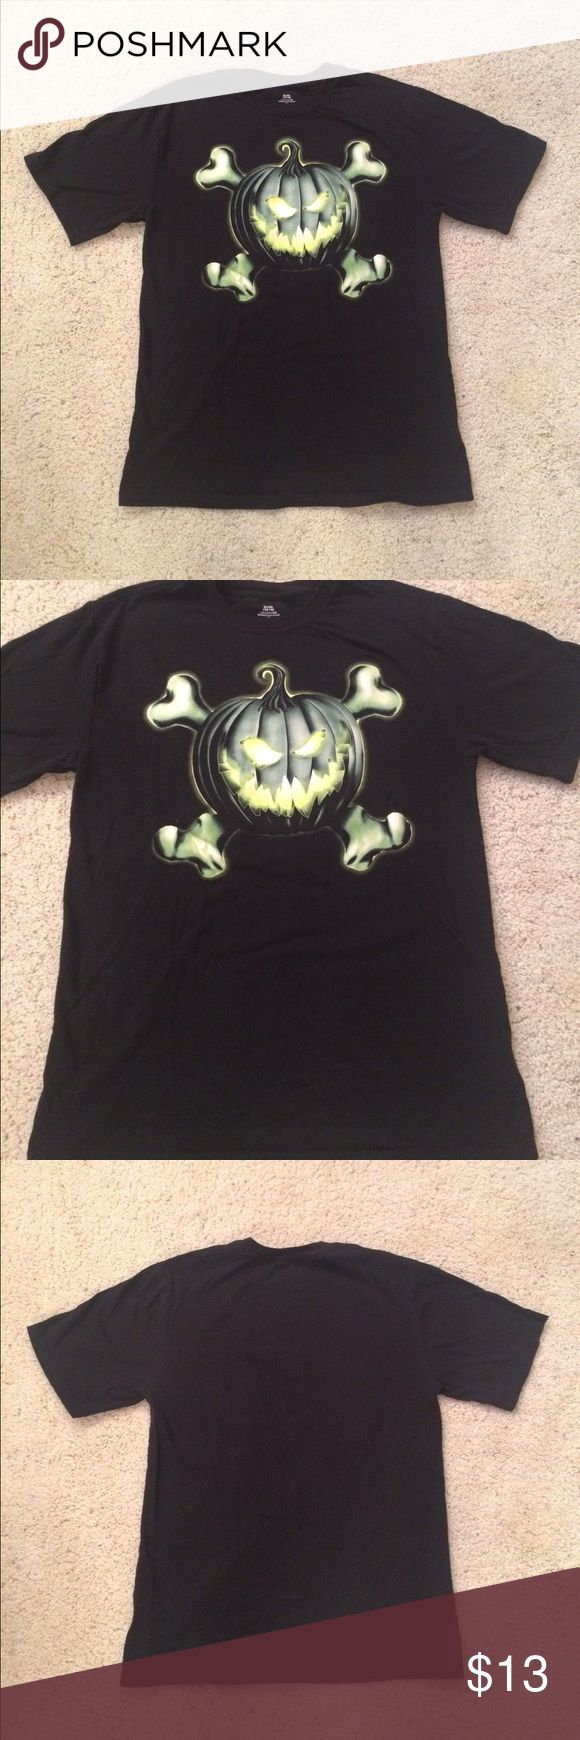 Halloween Black Glowing Pumpkin Tee Shirt Sz XL Women's Size XL[14/16](runs a tad small) Halloween themed short sleeve tee shirt. Black with a glowing pumpkin and crossbones on the front. 100% cotton. In gently used condition with no stains or rips. Has minor fading. Measurements available upon request! If you have any questions, please don't hesitate to ask! Holiday Tops Tees - Short Sleeve